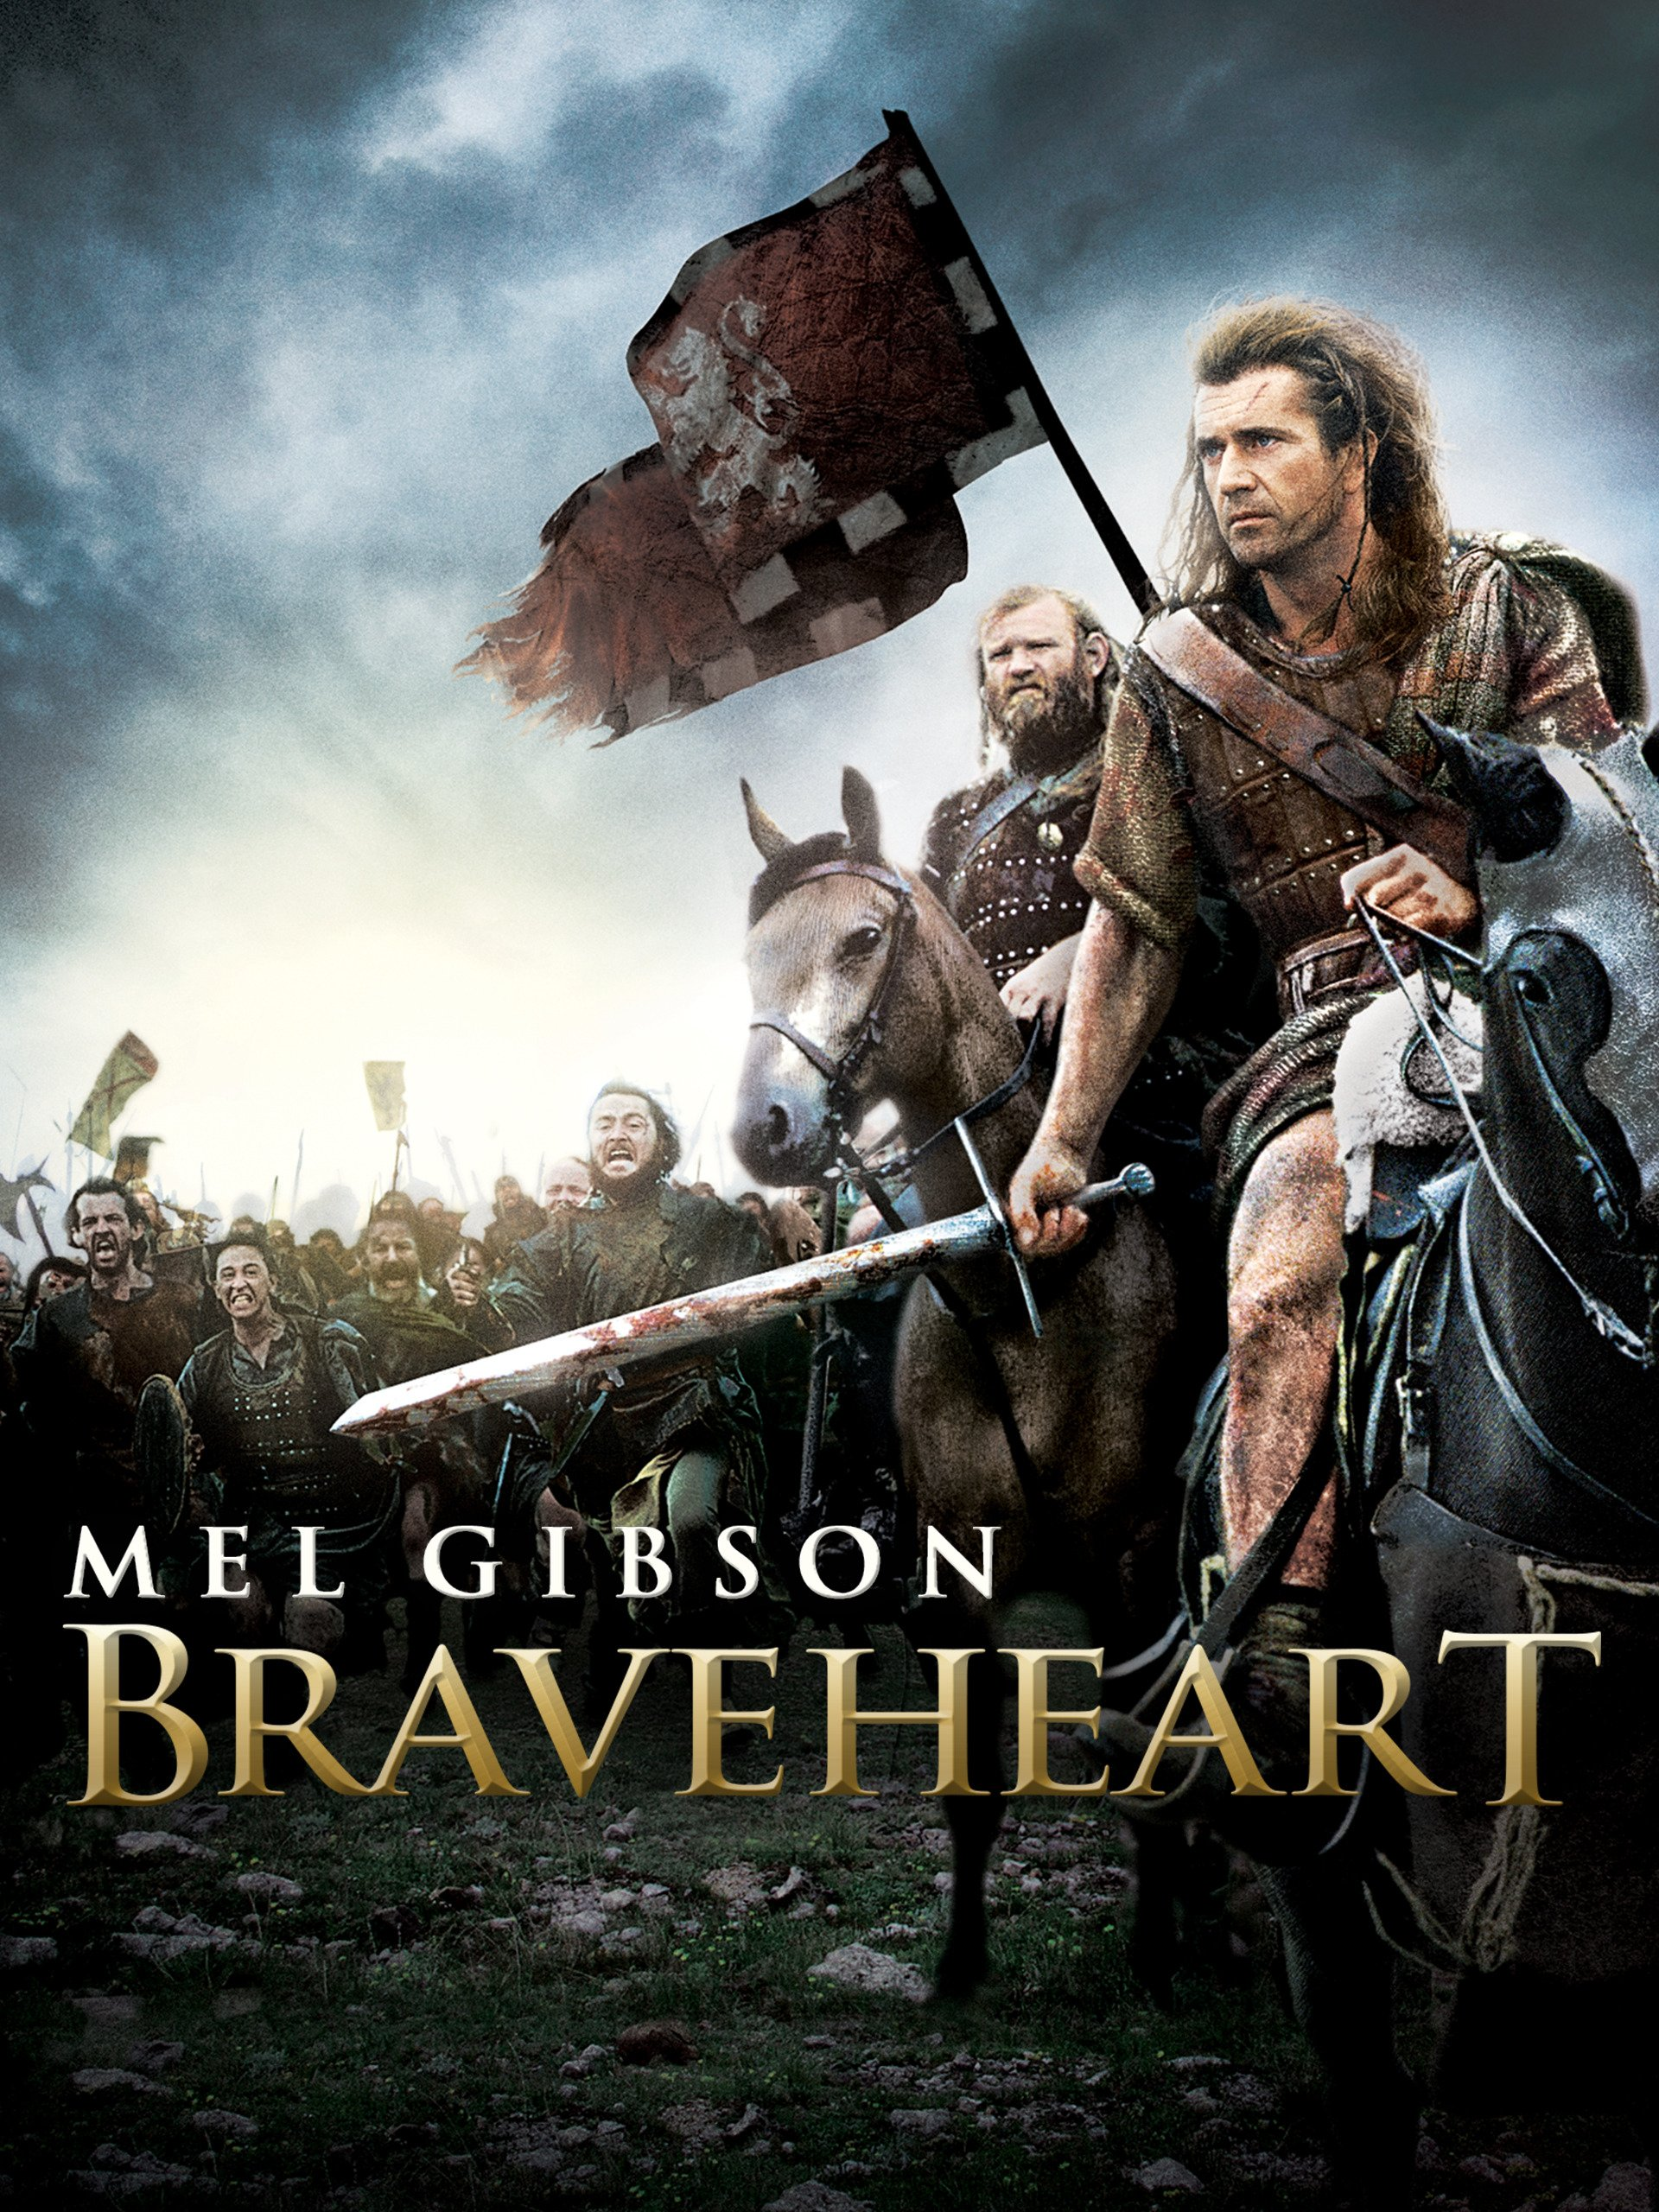 Braveheart Watch Online Now With Amazon Instant Video Mel Gibson William Wallace Sophie Marceau Princess Isabelle Patrick Mcgoohan Longshanks